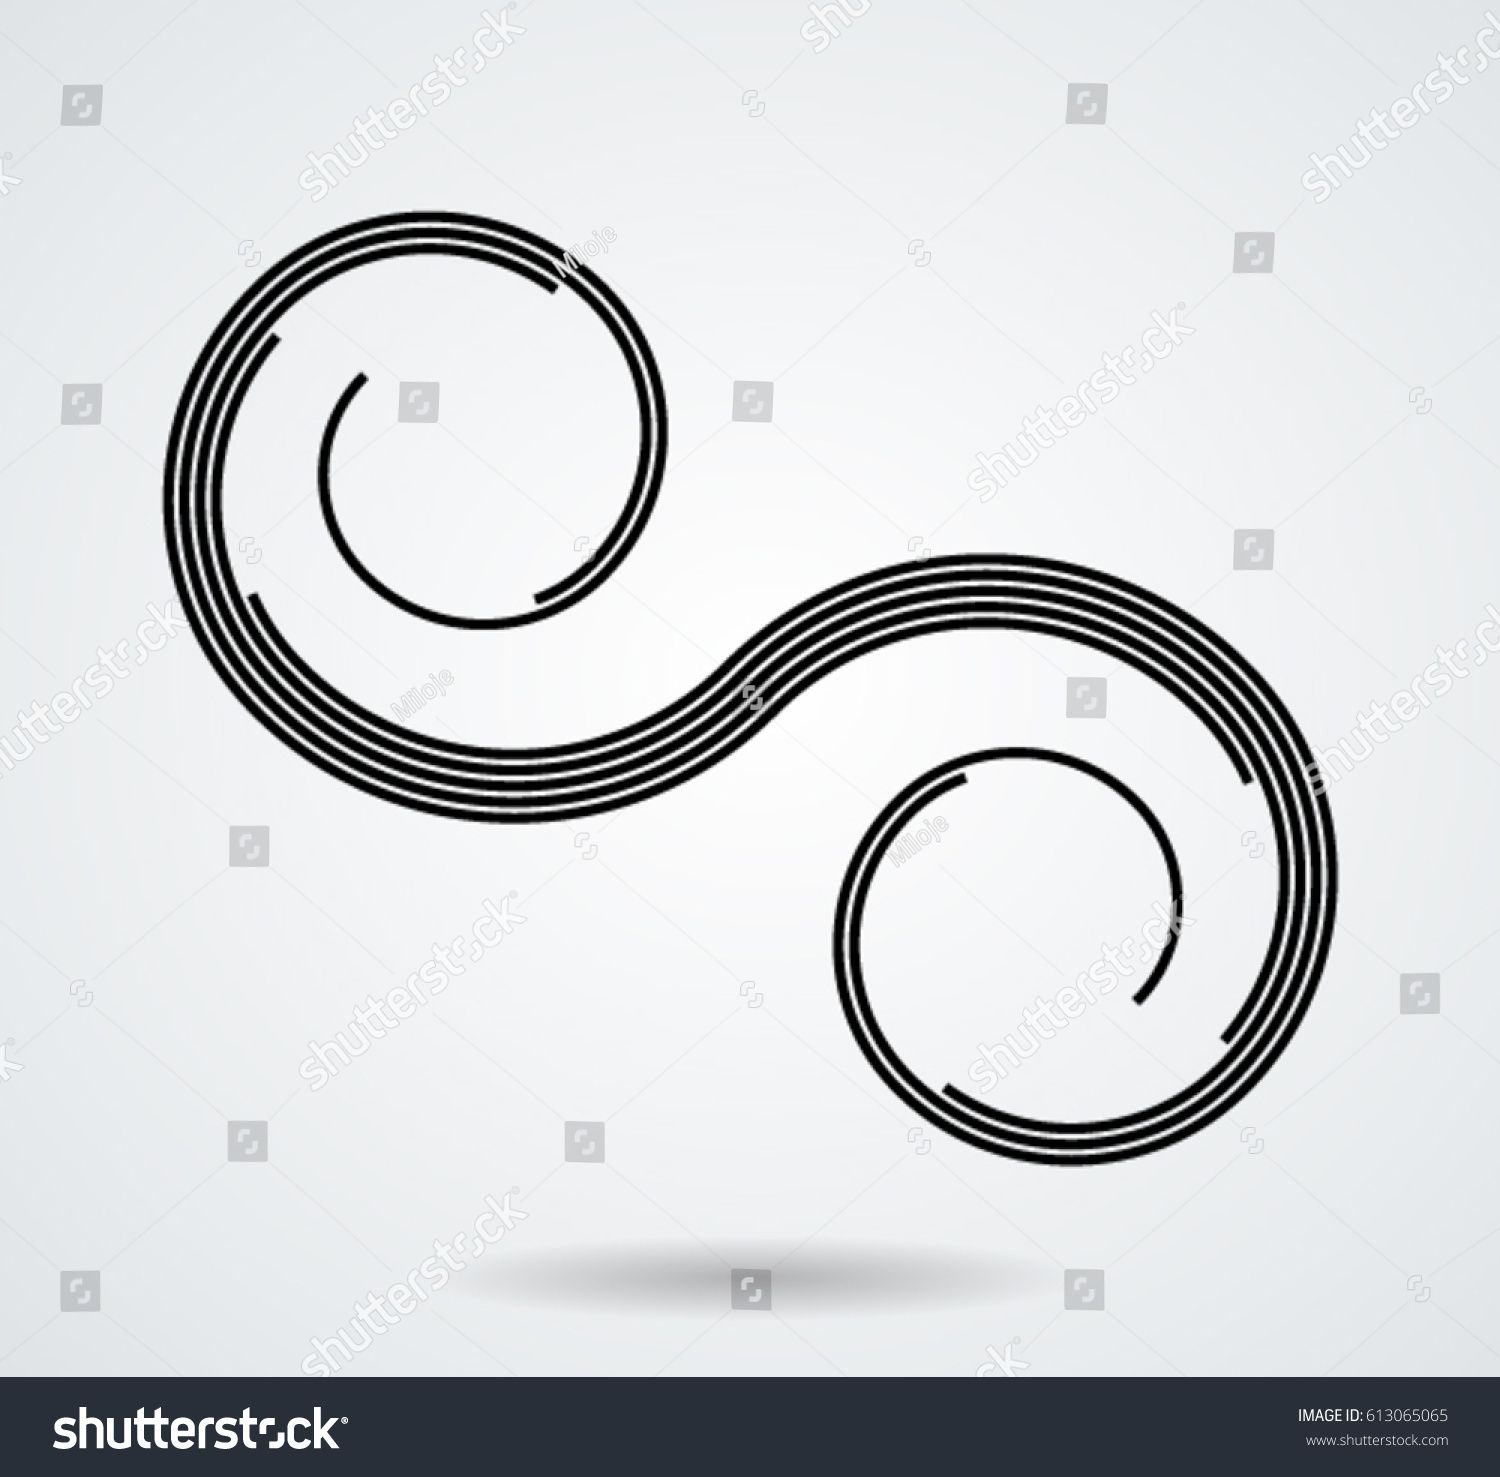 Vector Curved Lines Design Element Black Painted Stroke Used As Banner Template Logo Ad Aff Design El In 2020 Design Element Black Paint Stock Photos